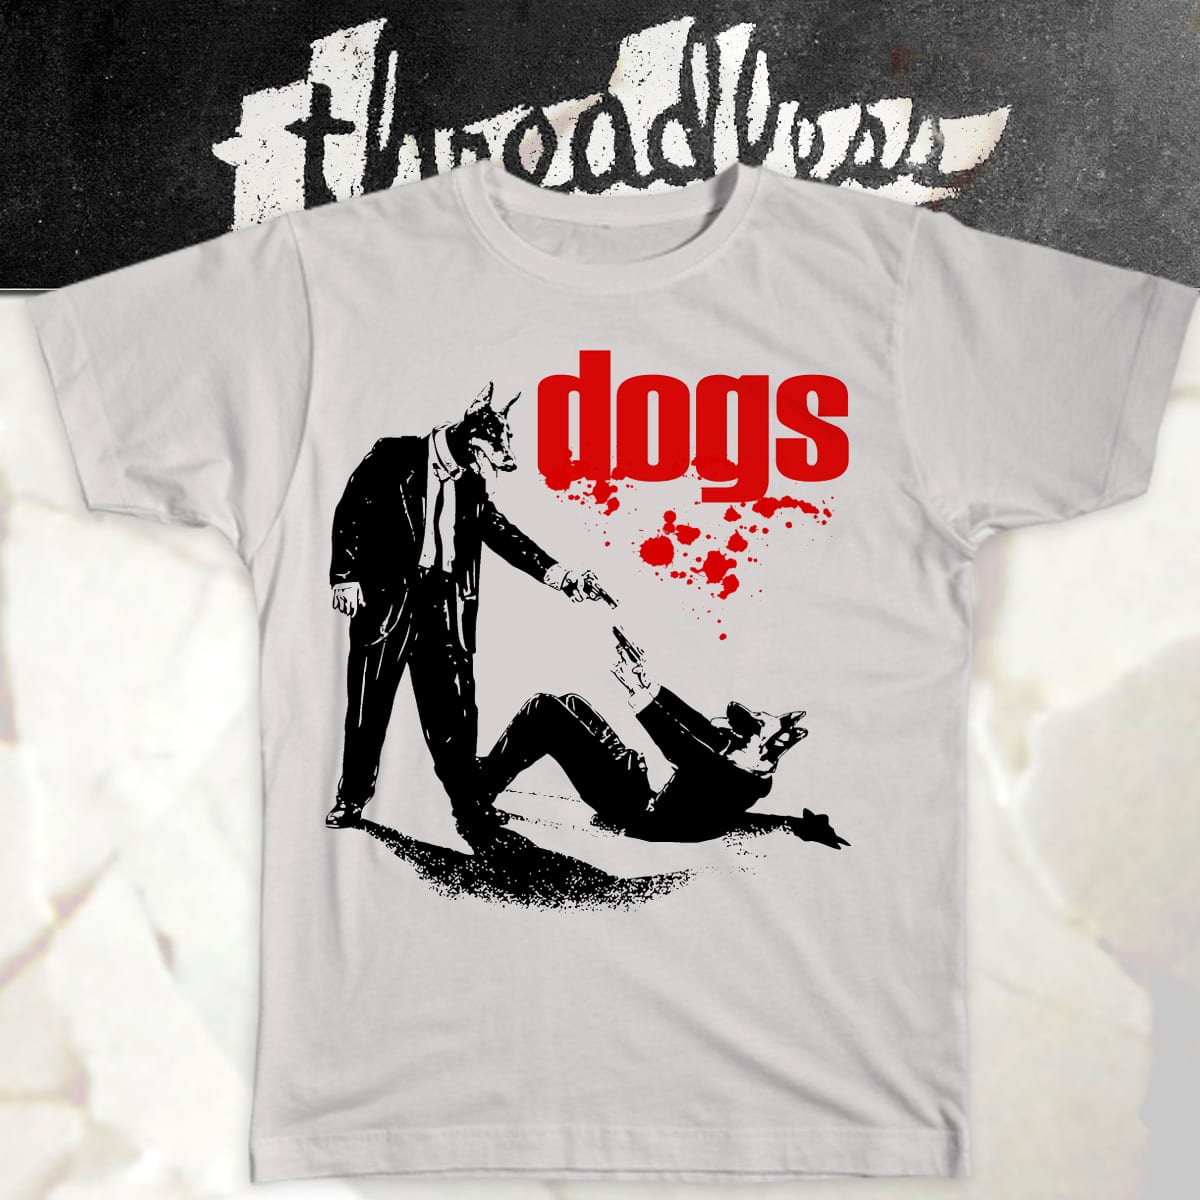 MR. DOGS by coffeecontrolled on Threadless